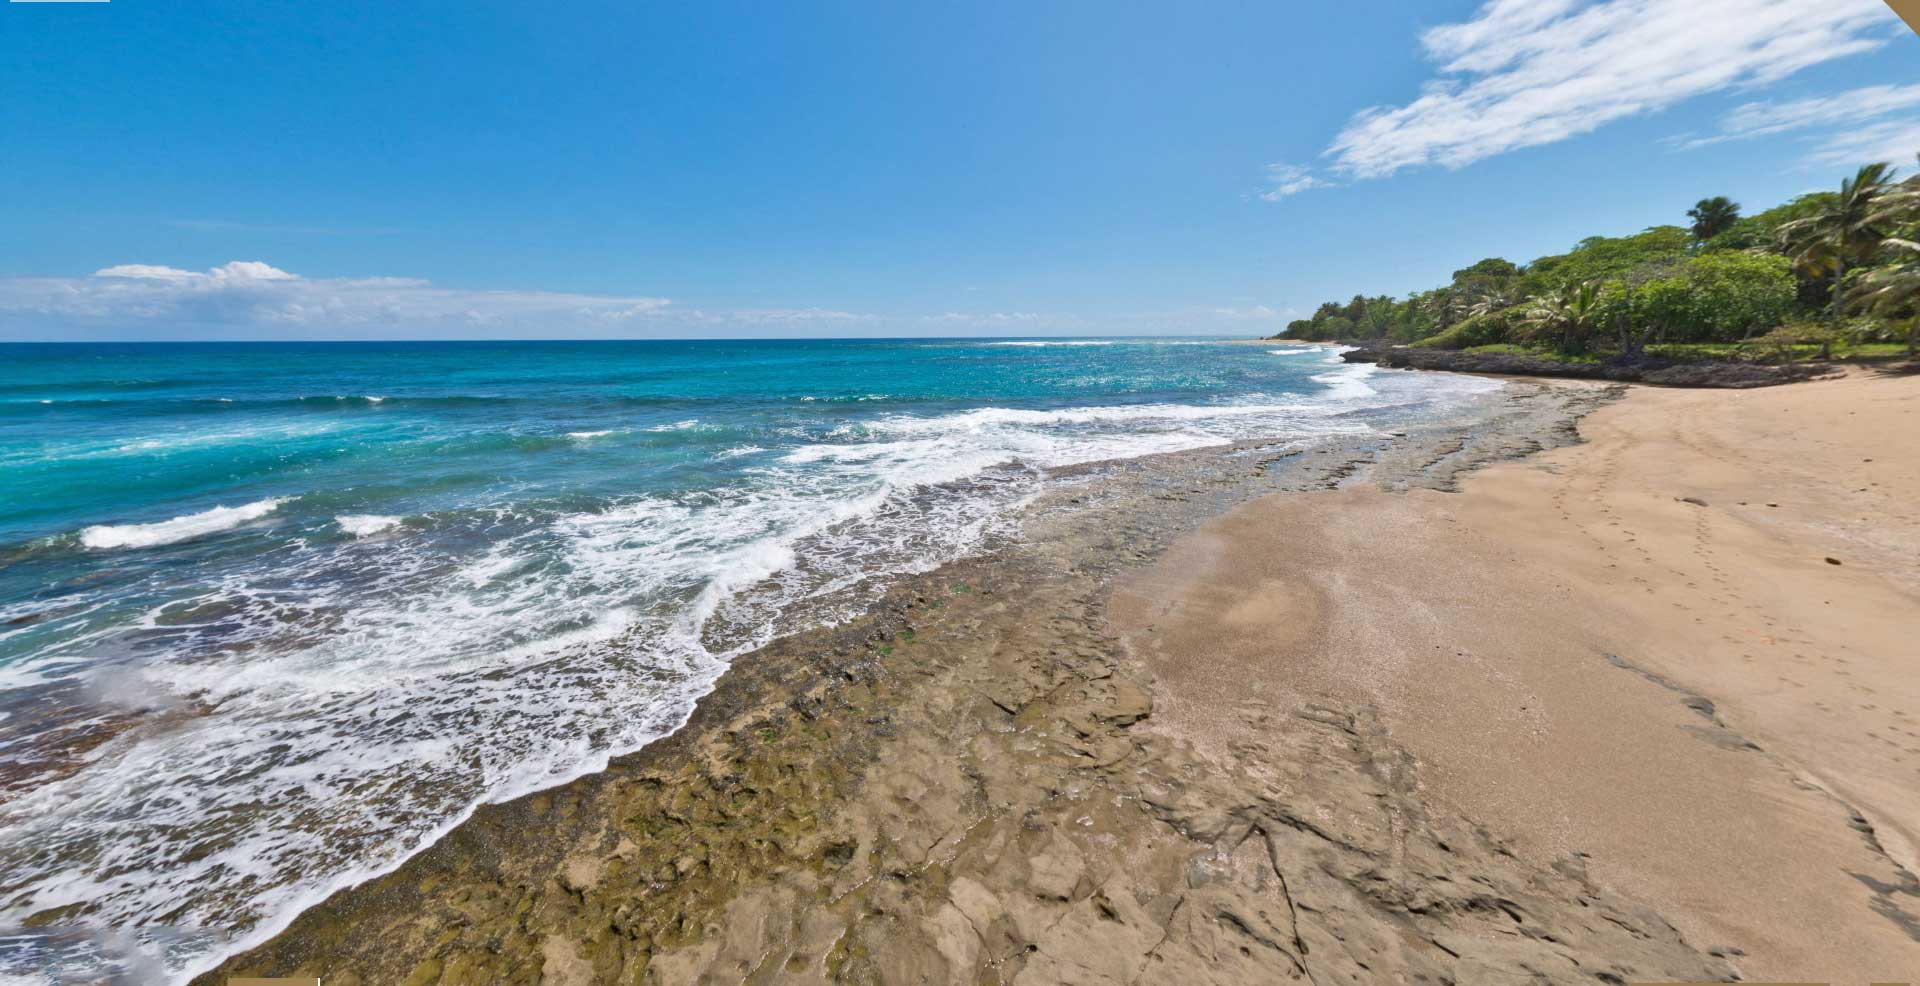 Ocean Front Vacation Rental Villa with beautiful private Beach